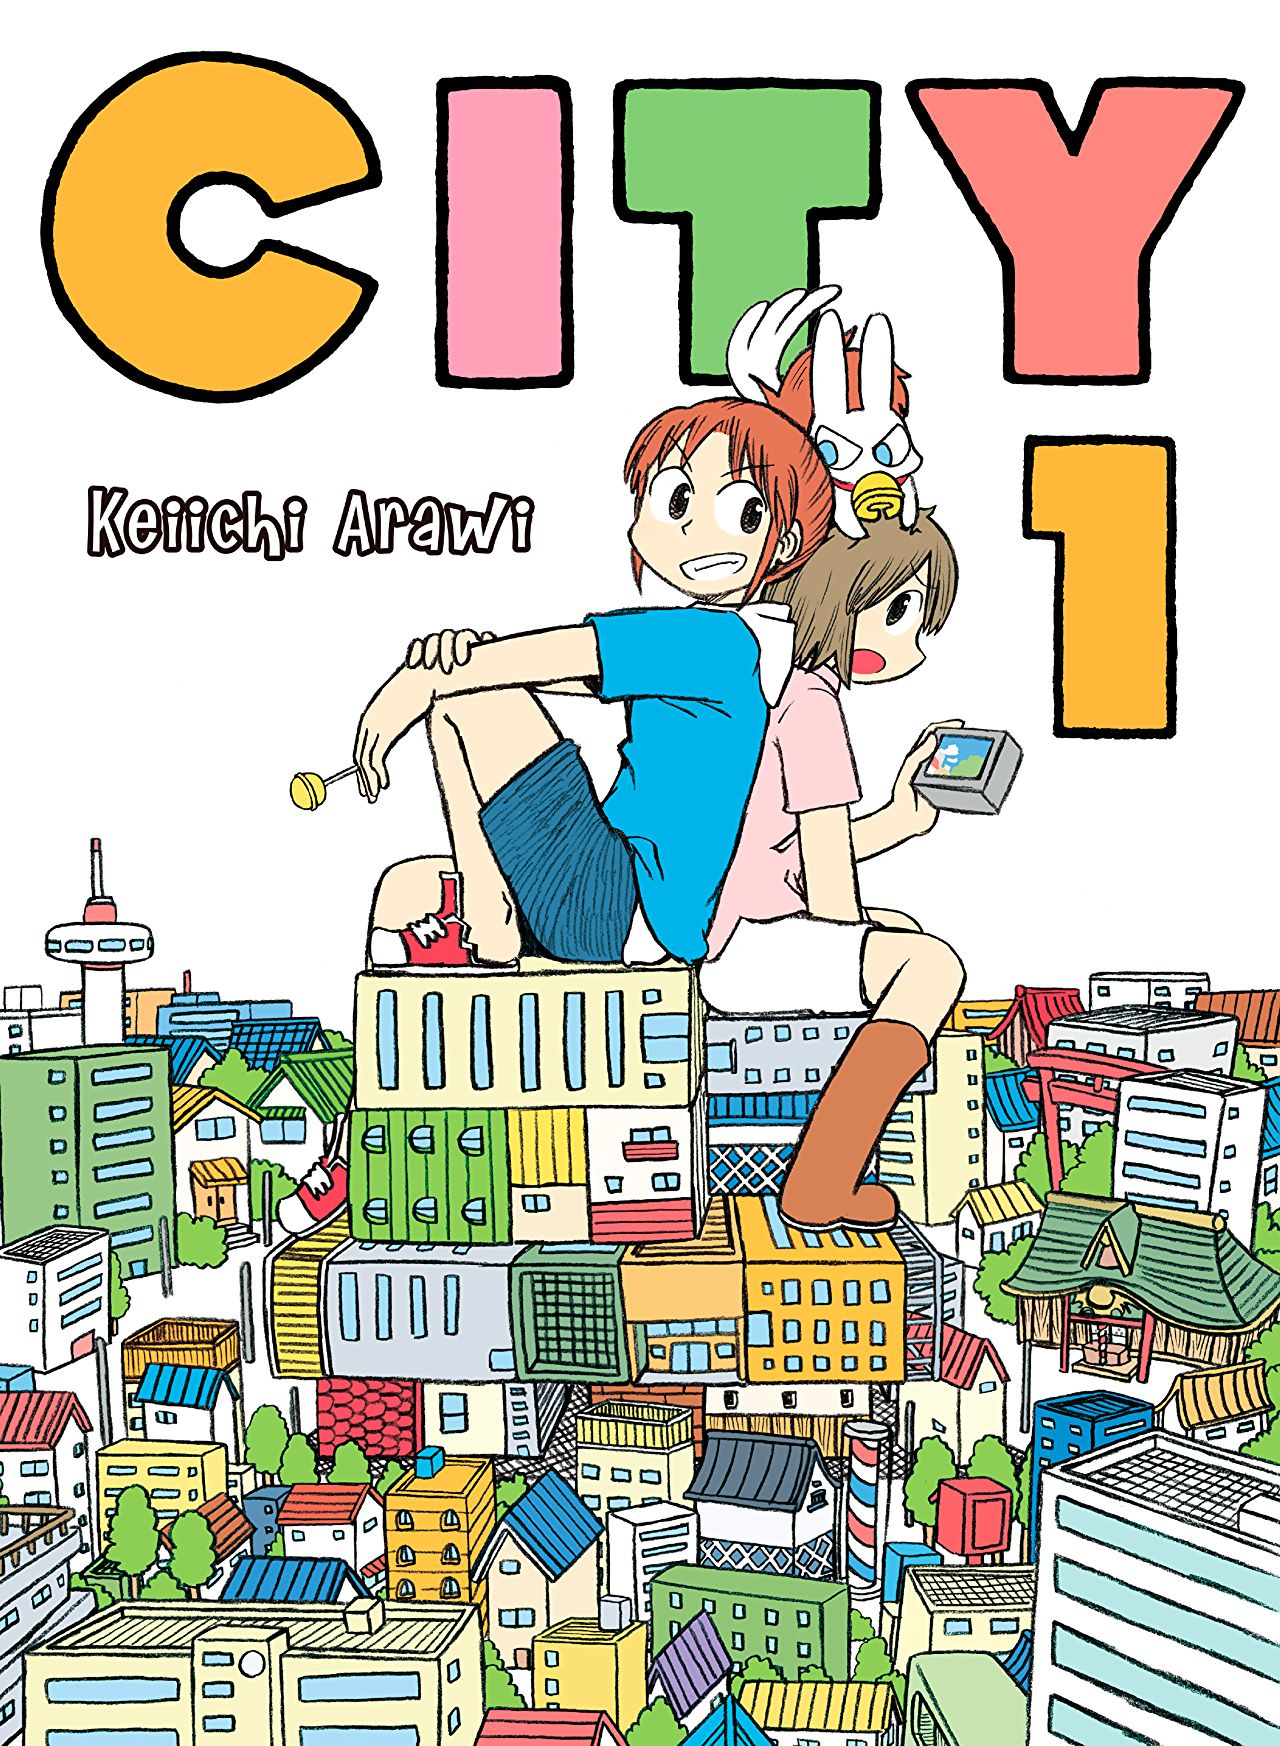 CITY Vol. 1 review: Jam-packed with comedy